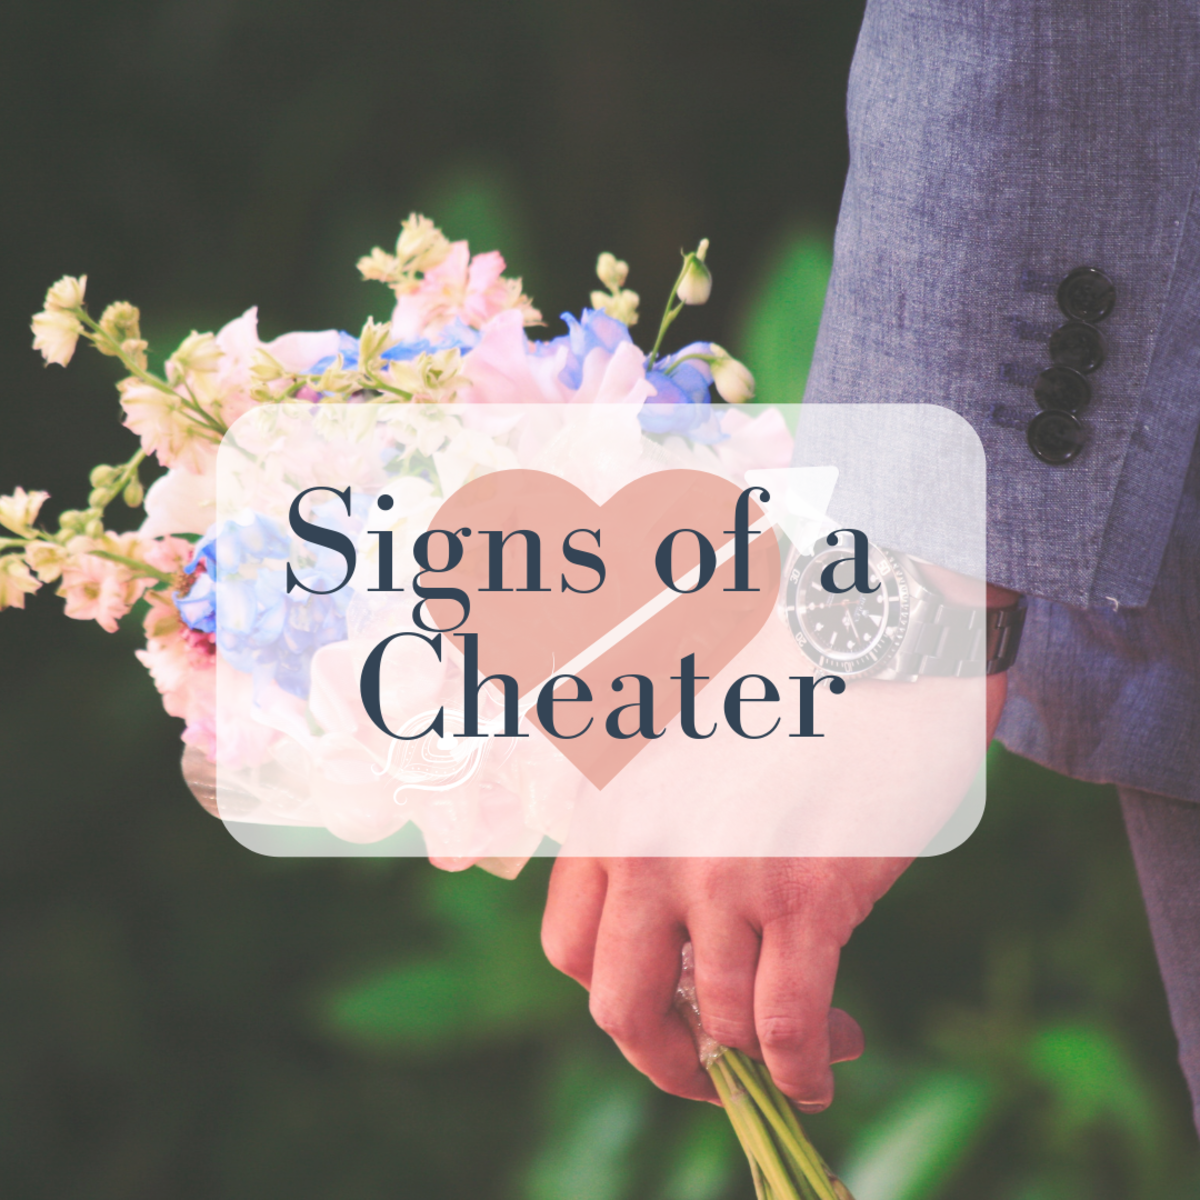 What are the signs of a cheater?